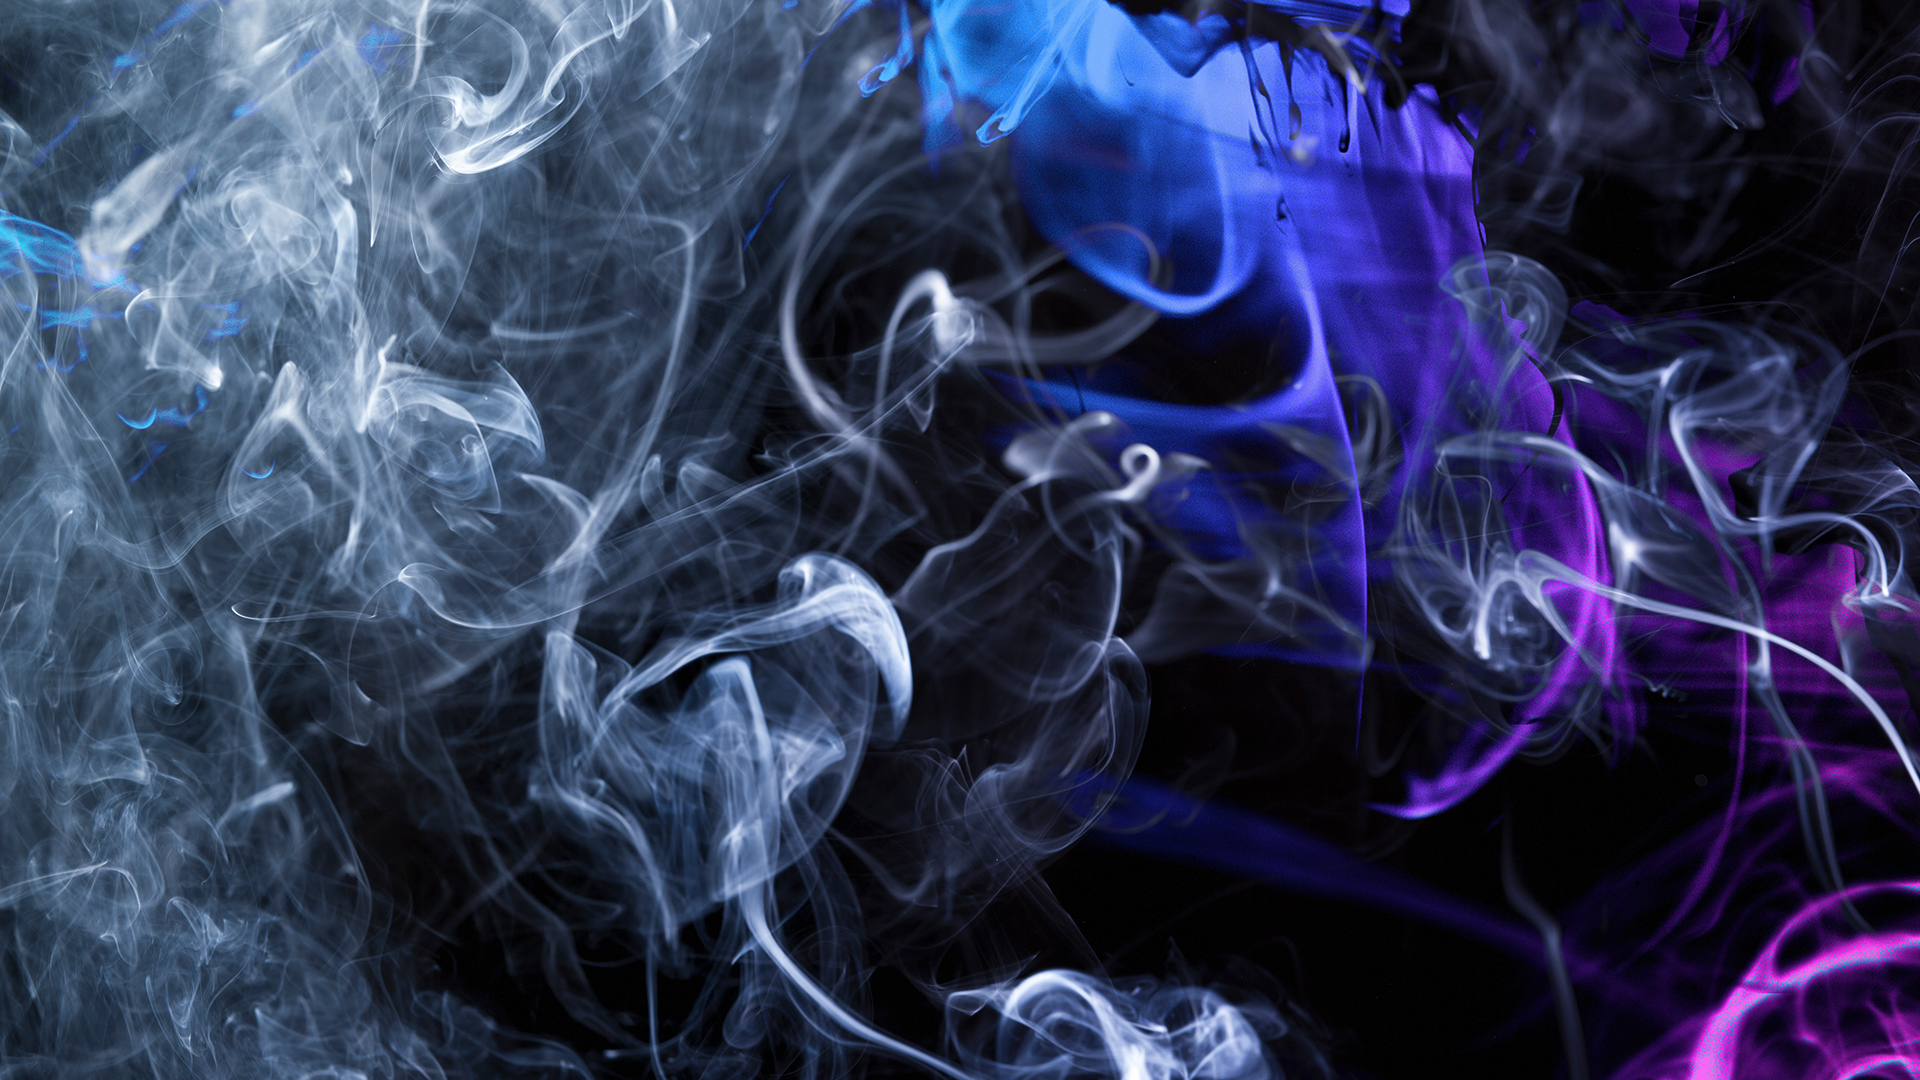 Free Abstract Smoke Chromebook Wallpaper Ready For Download